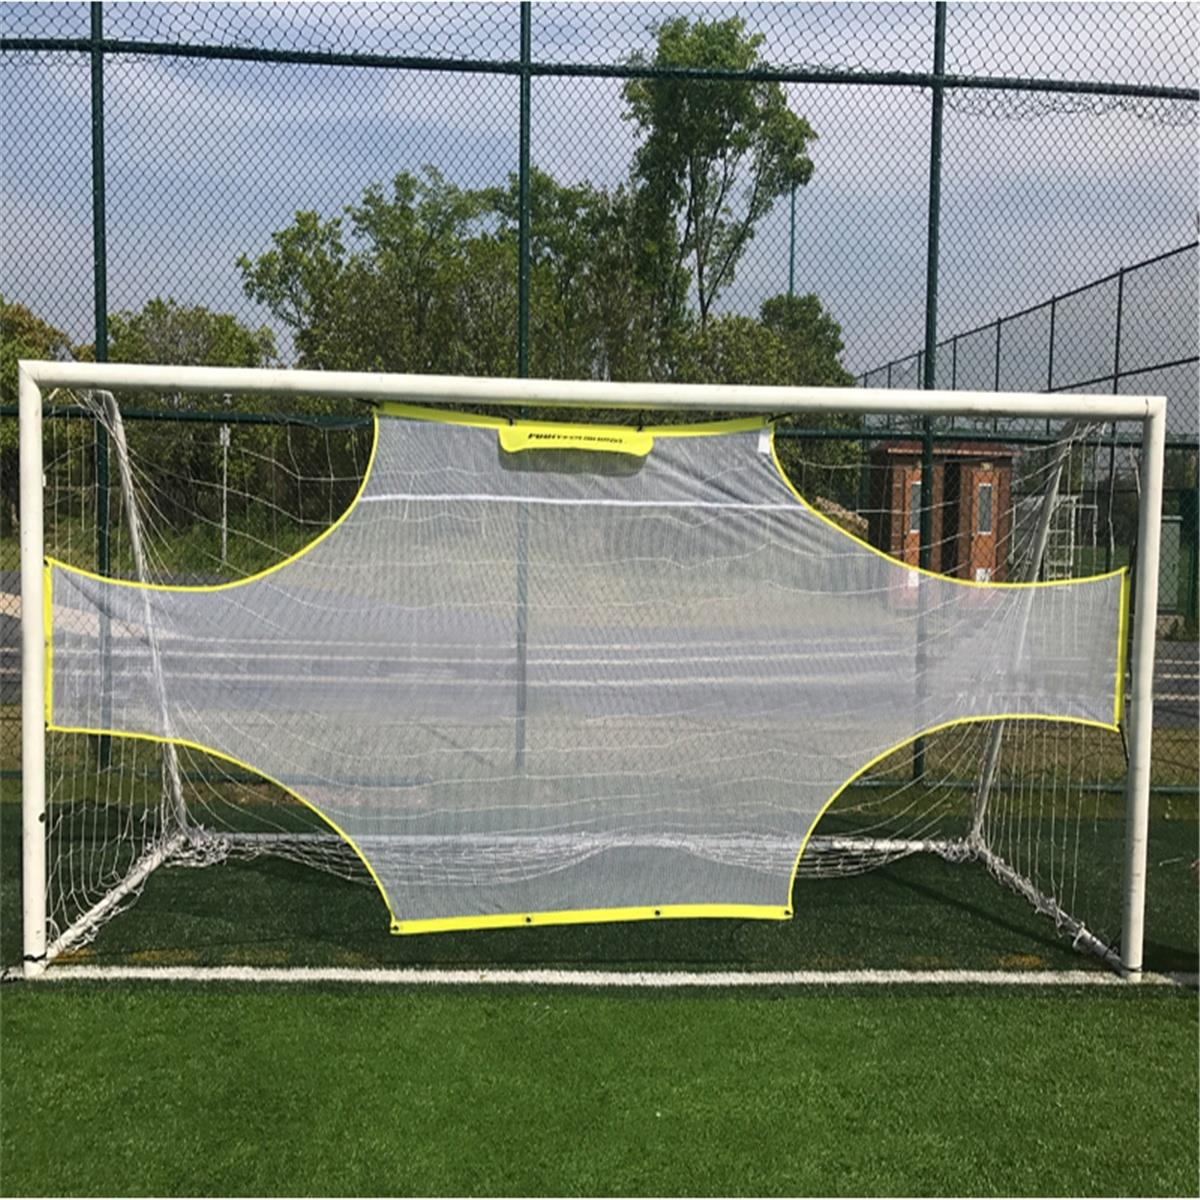 Match Field Portable Practical Soccer Ball Net Yellow White Polyester Goalkeeper Football Gate Outdoor Goal Net Game Goal image